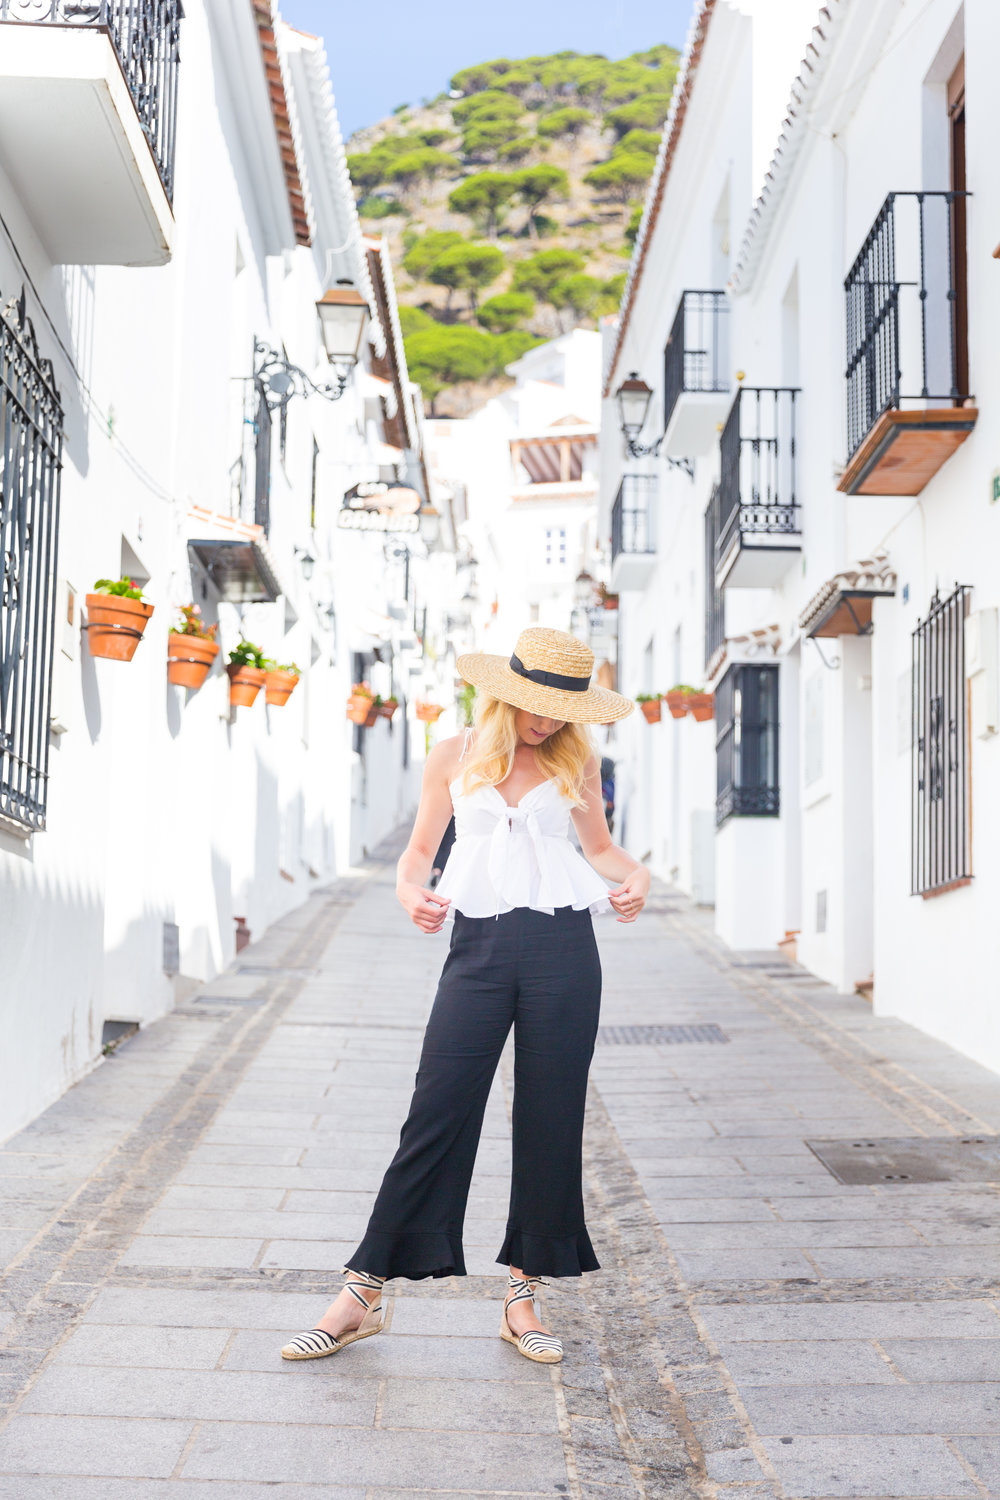 Spain Mijas Malaga Black and White Summer Fashion Flare-4.jpg